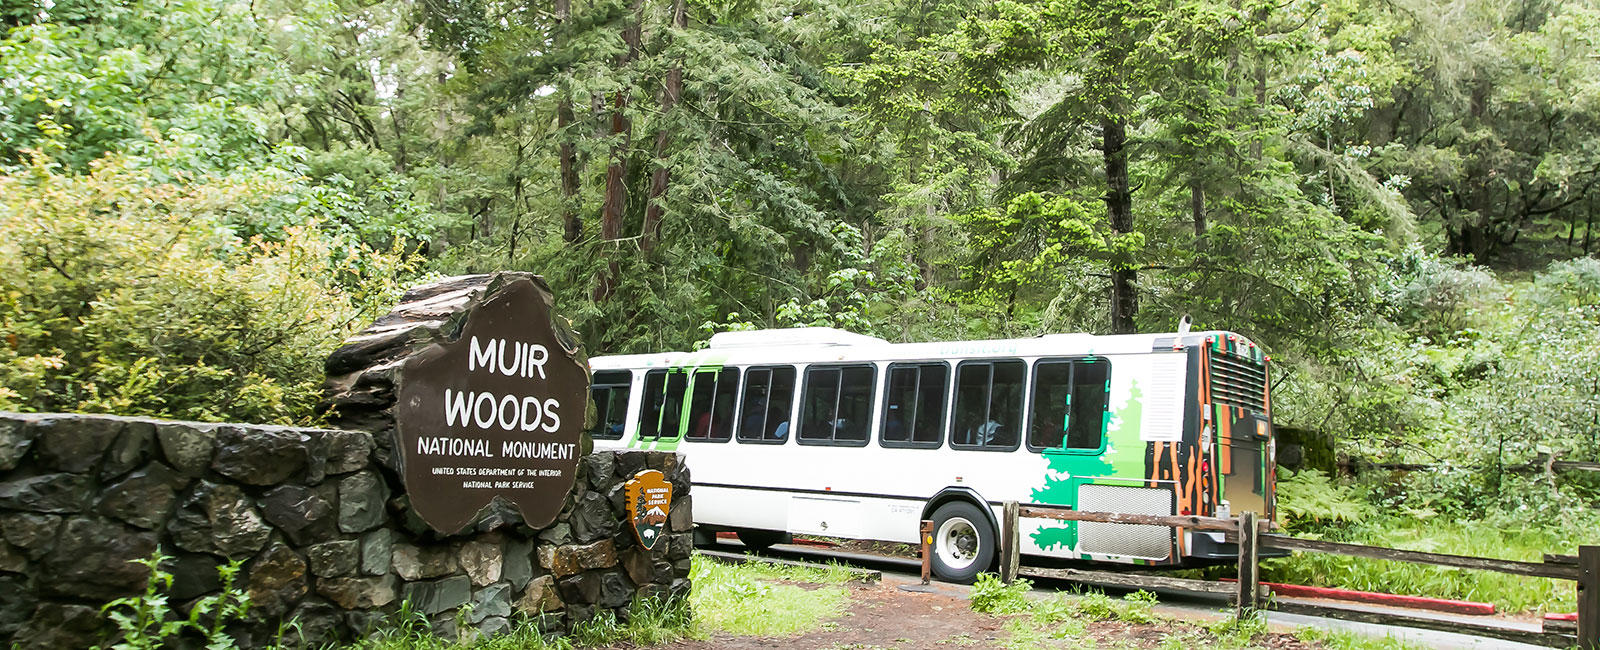 Bus entering Muir Woods National Monument